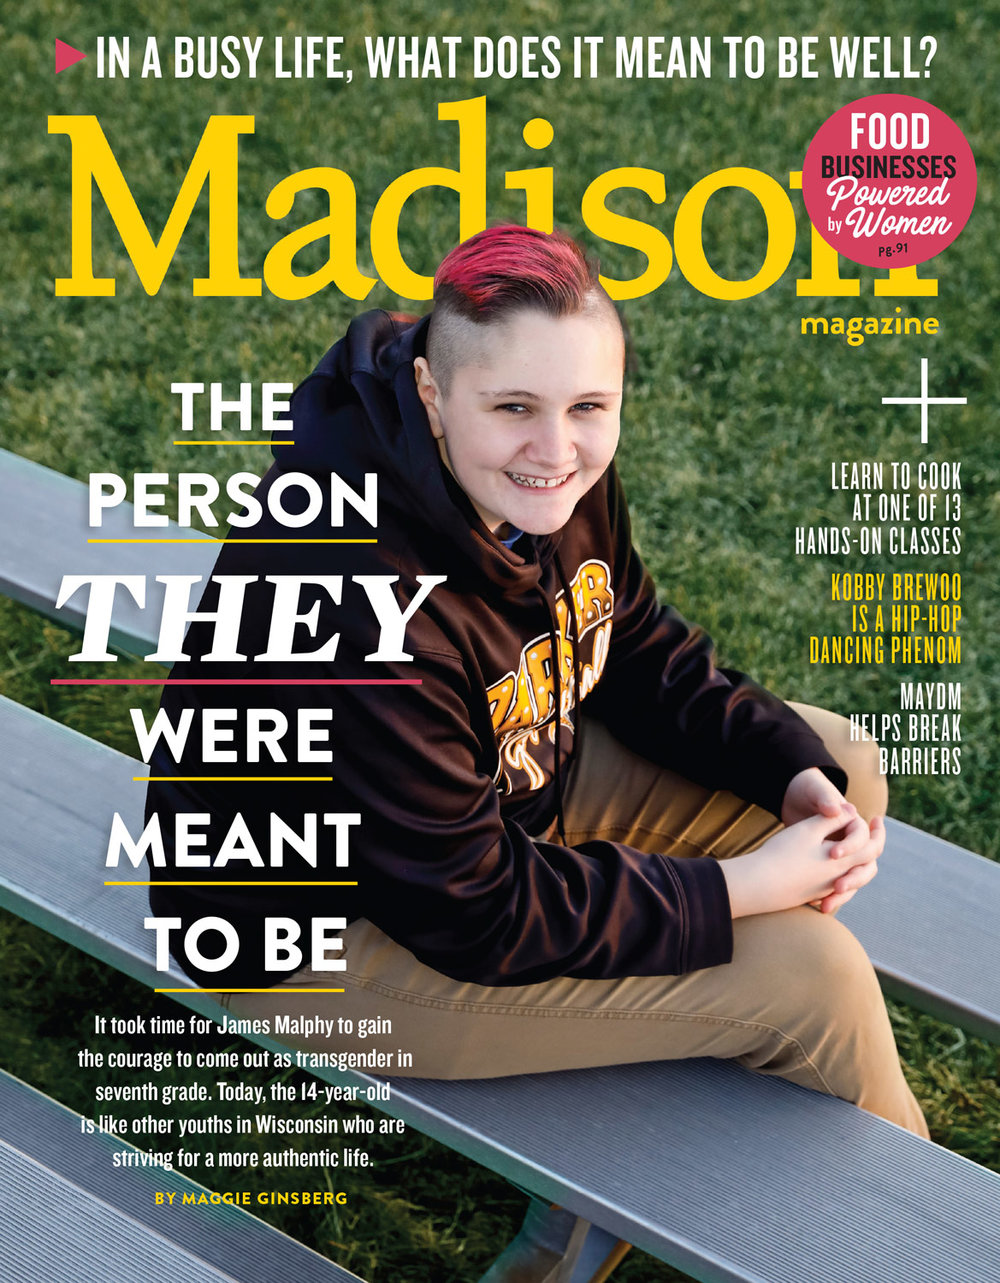 Madison-Magazine-Feb-2019-Cover-ruthie-hauge-photography.jpg